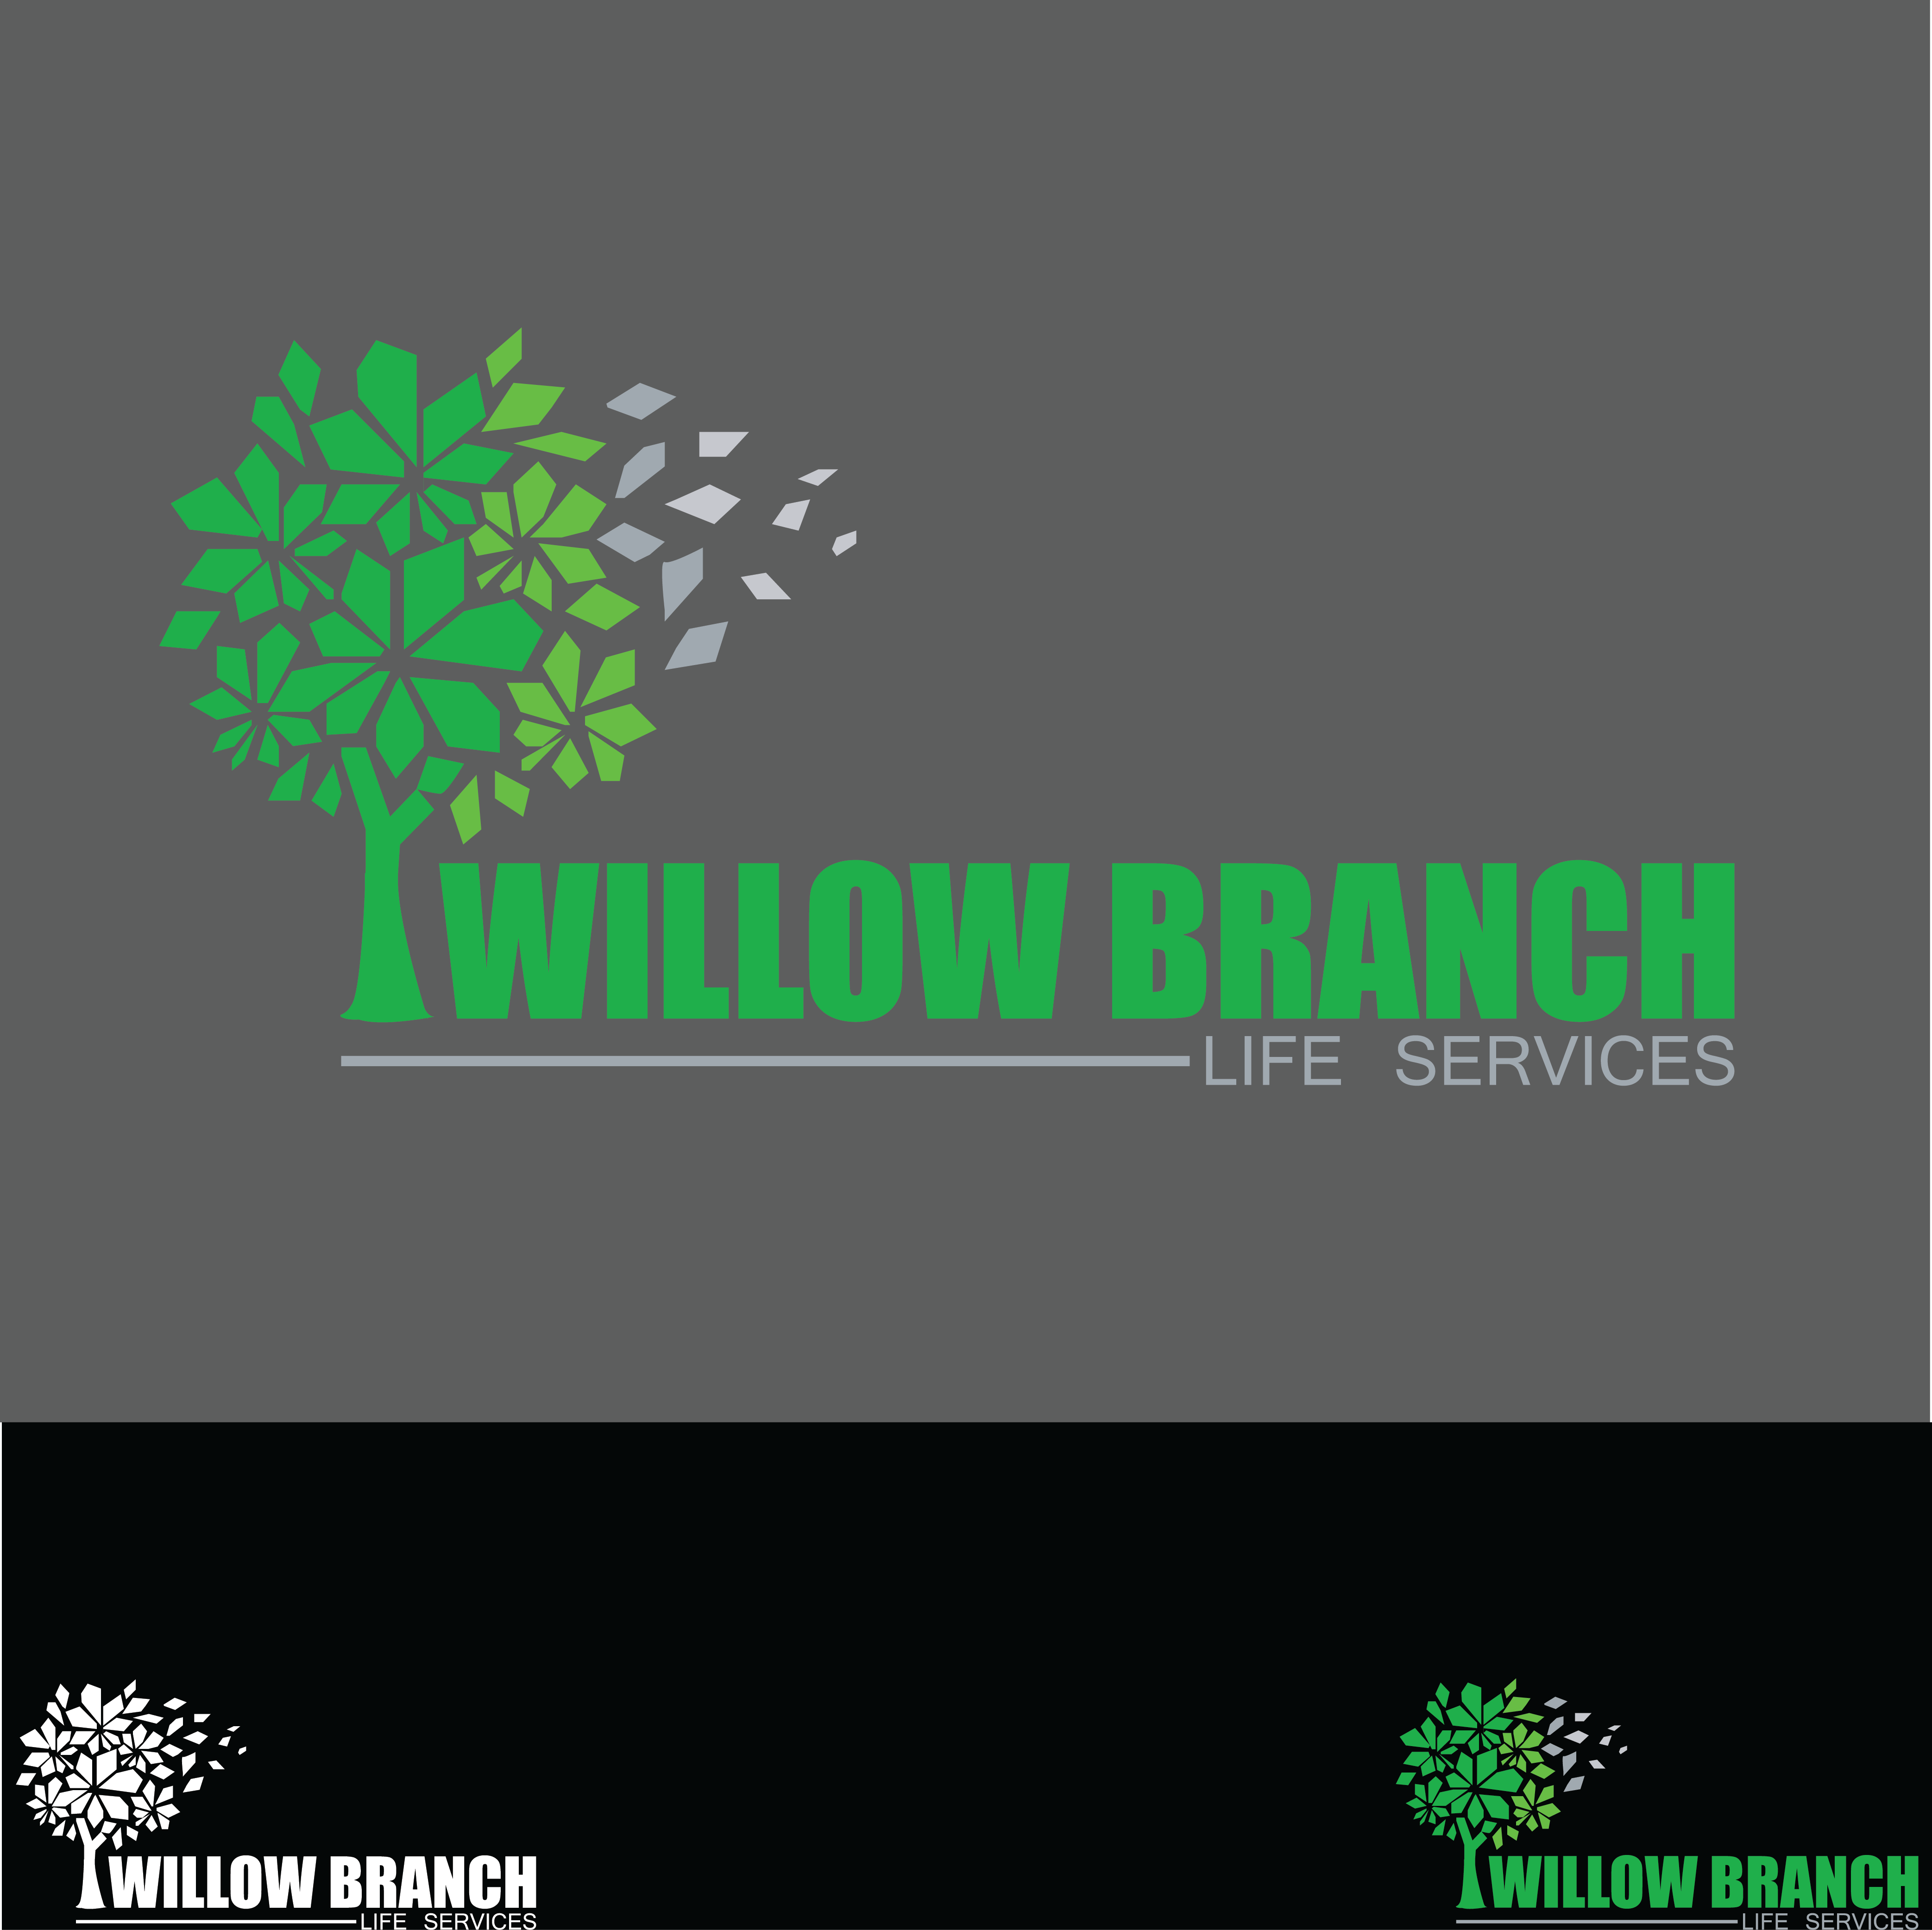 Logo Design by pojas12 - Entry No. 454 in the Logo Design Contest Artistic Logo Design for Willow Branch Life Service.